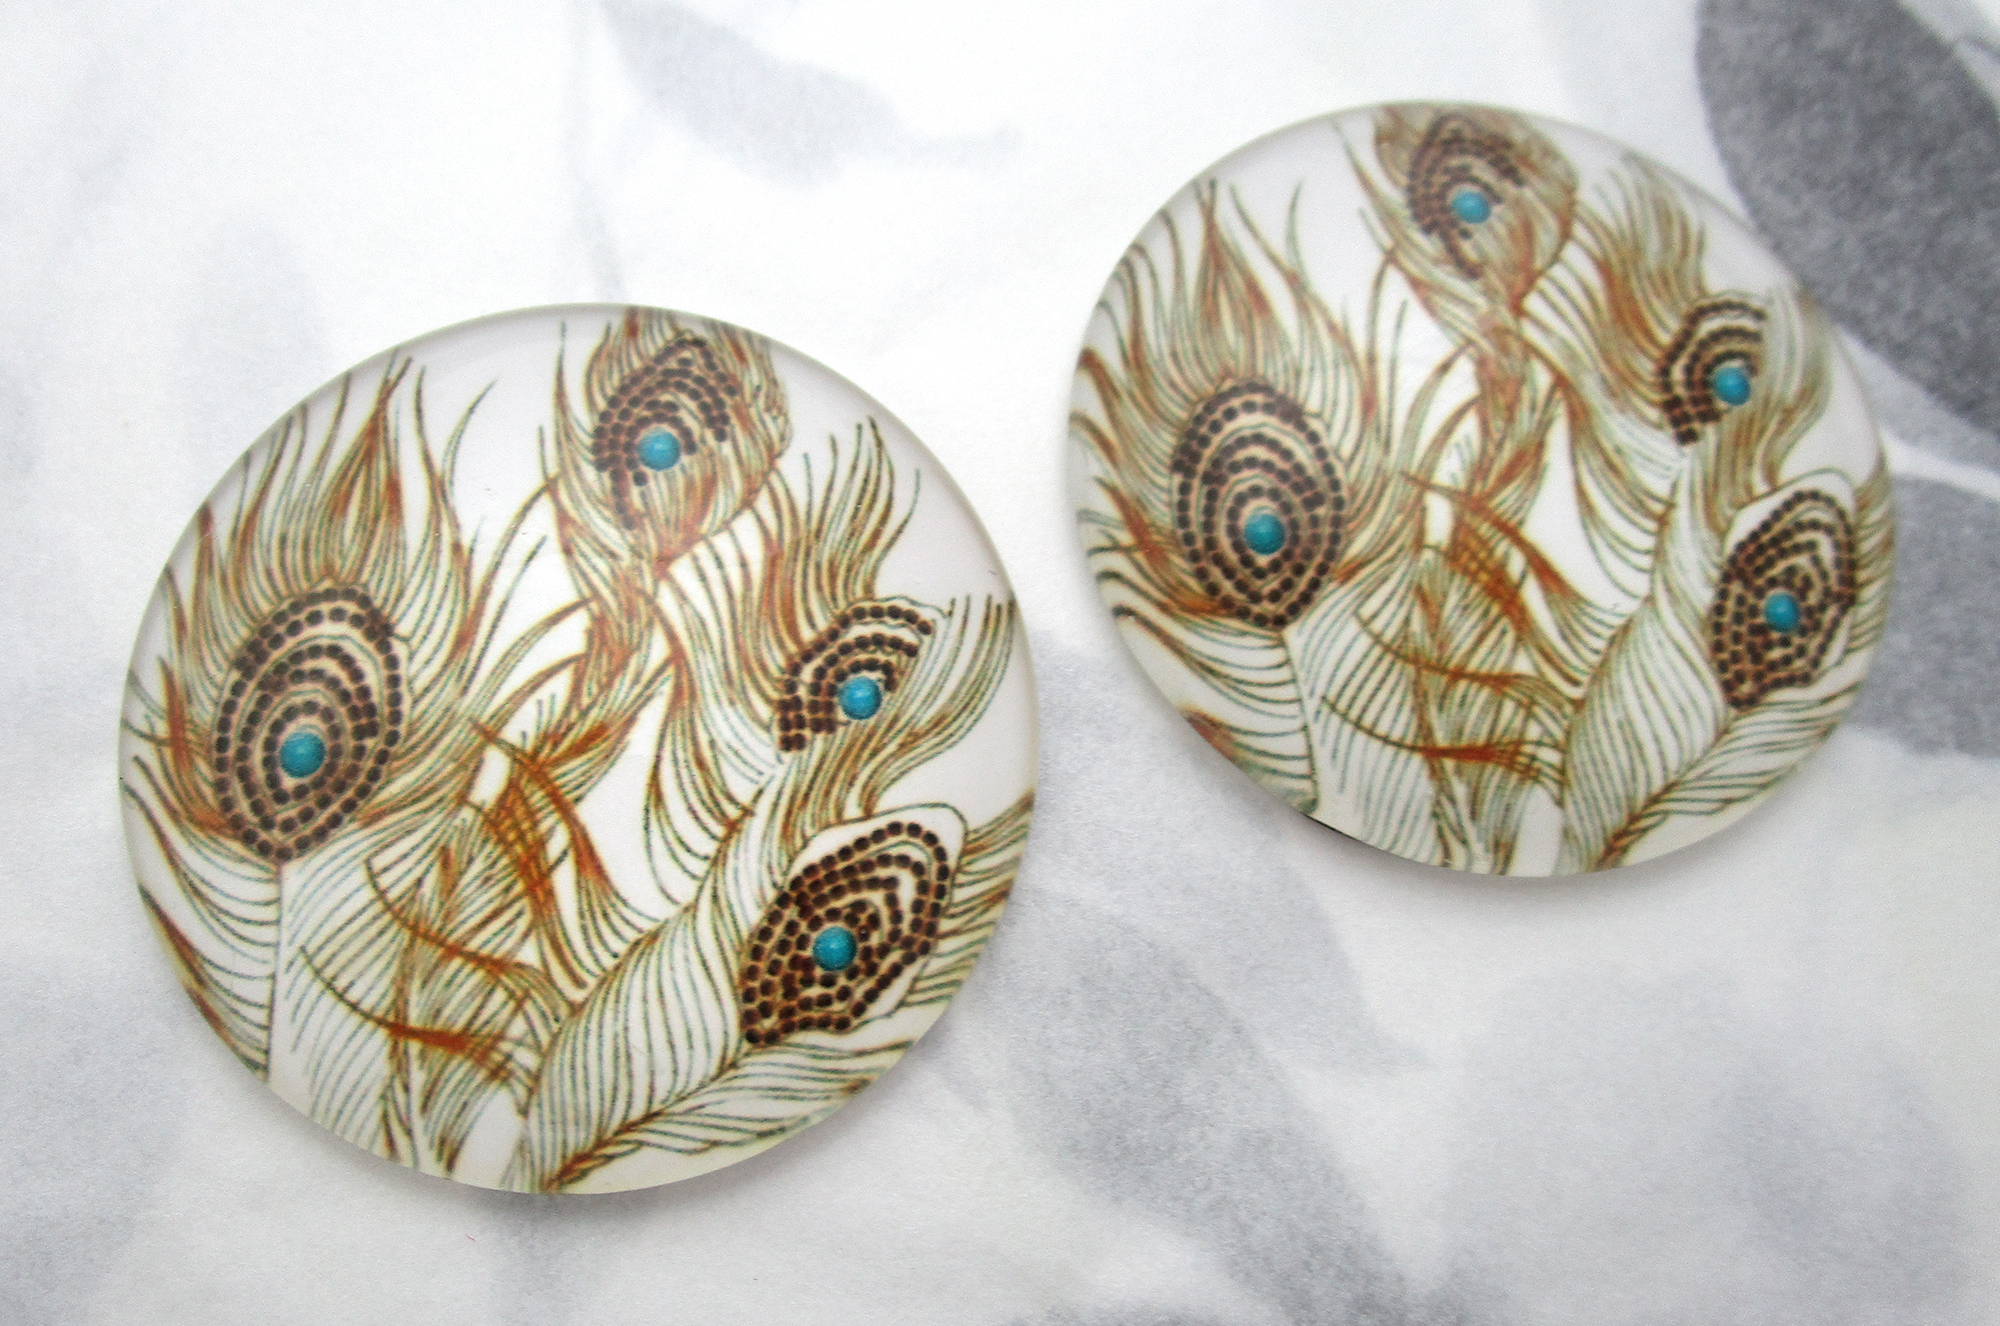 2 pcs. glass peacock feather flat back cabochons 40mm - f7220